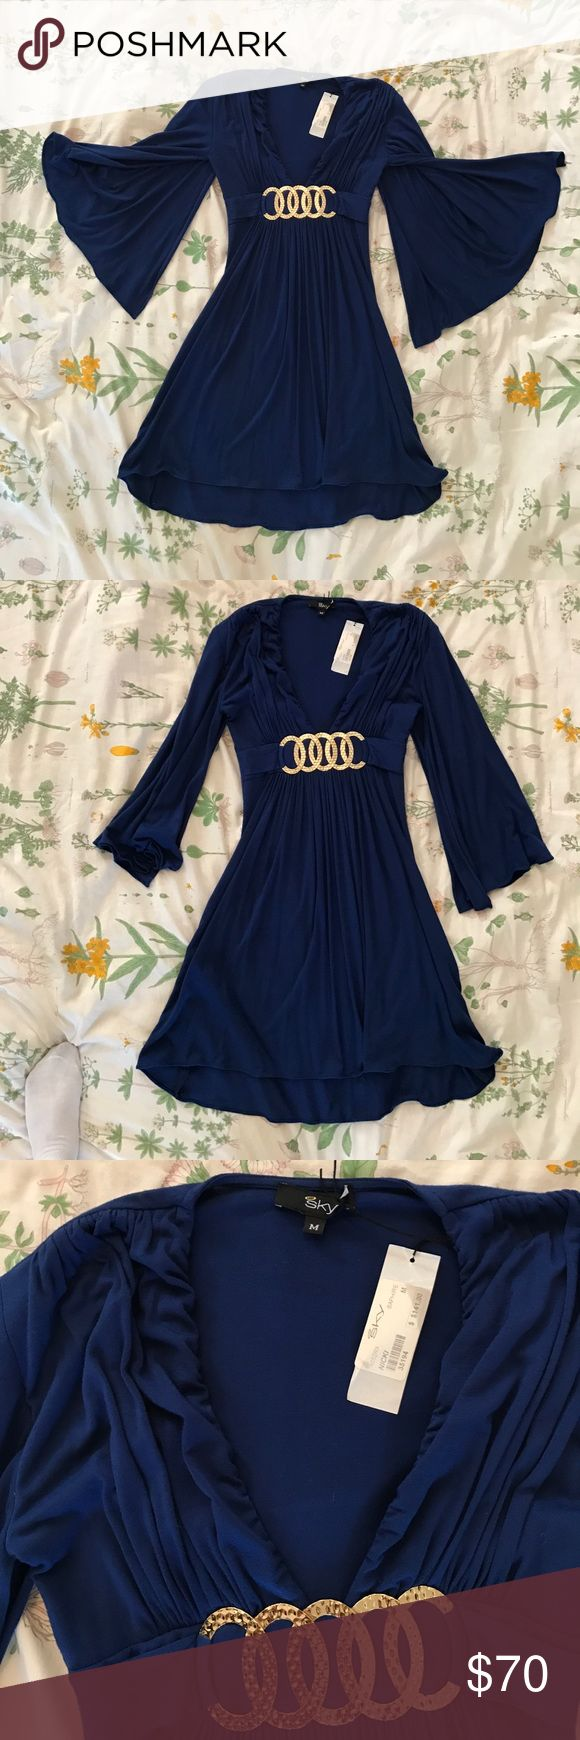 Blue Long Open Sleeve Dress Deep V Sz S NWT Beautiful NWT royal blue dress by Sky. Size medium. Deep V, $141. very Flattering, Flowy, & Fun dress! ♥️♥️currently selling nearly everything I own & putting it towards post-grad travel funds and charity. make a reasonable offer or bundle and I will happily accept & show love to your page! Thanks for stopping by & happy shopping!🛍💌 Sky Dresses Long Sleeve